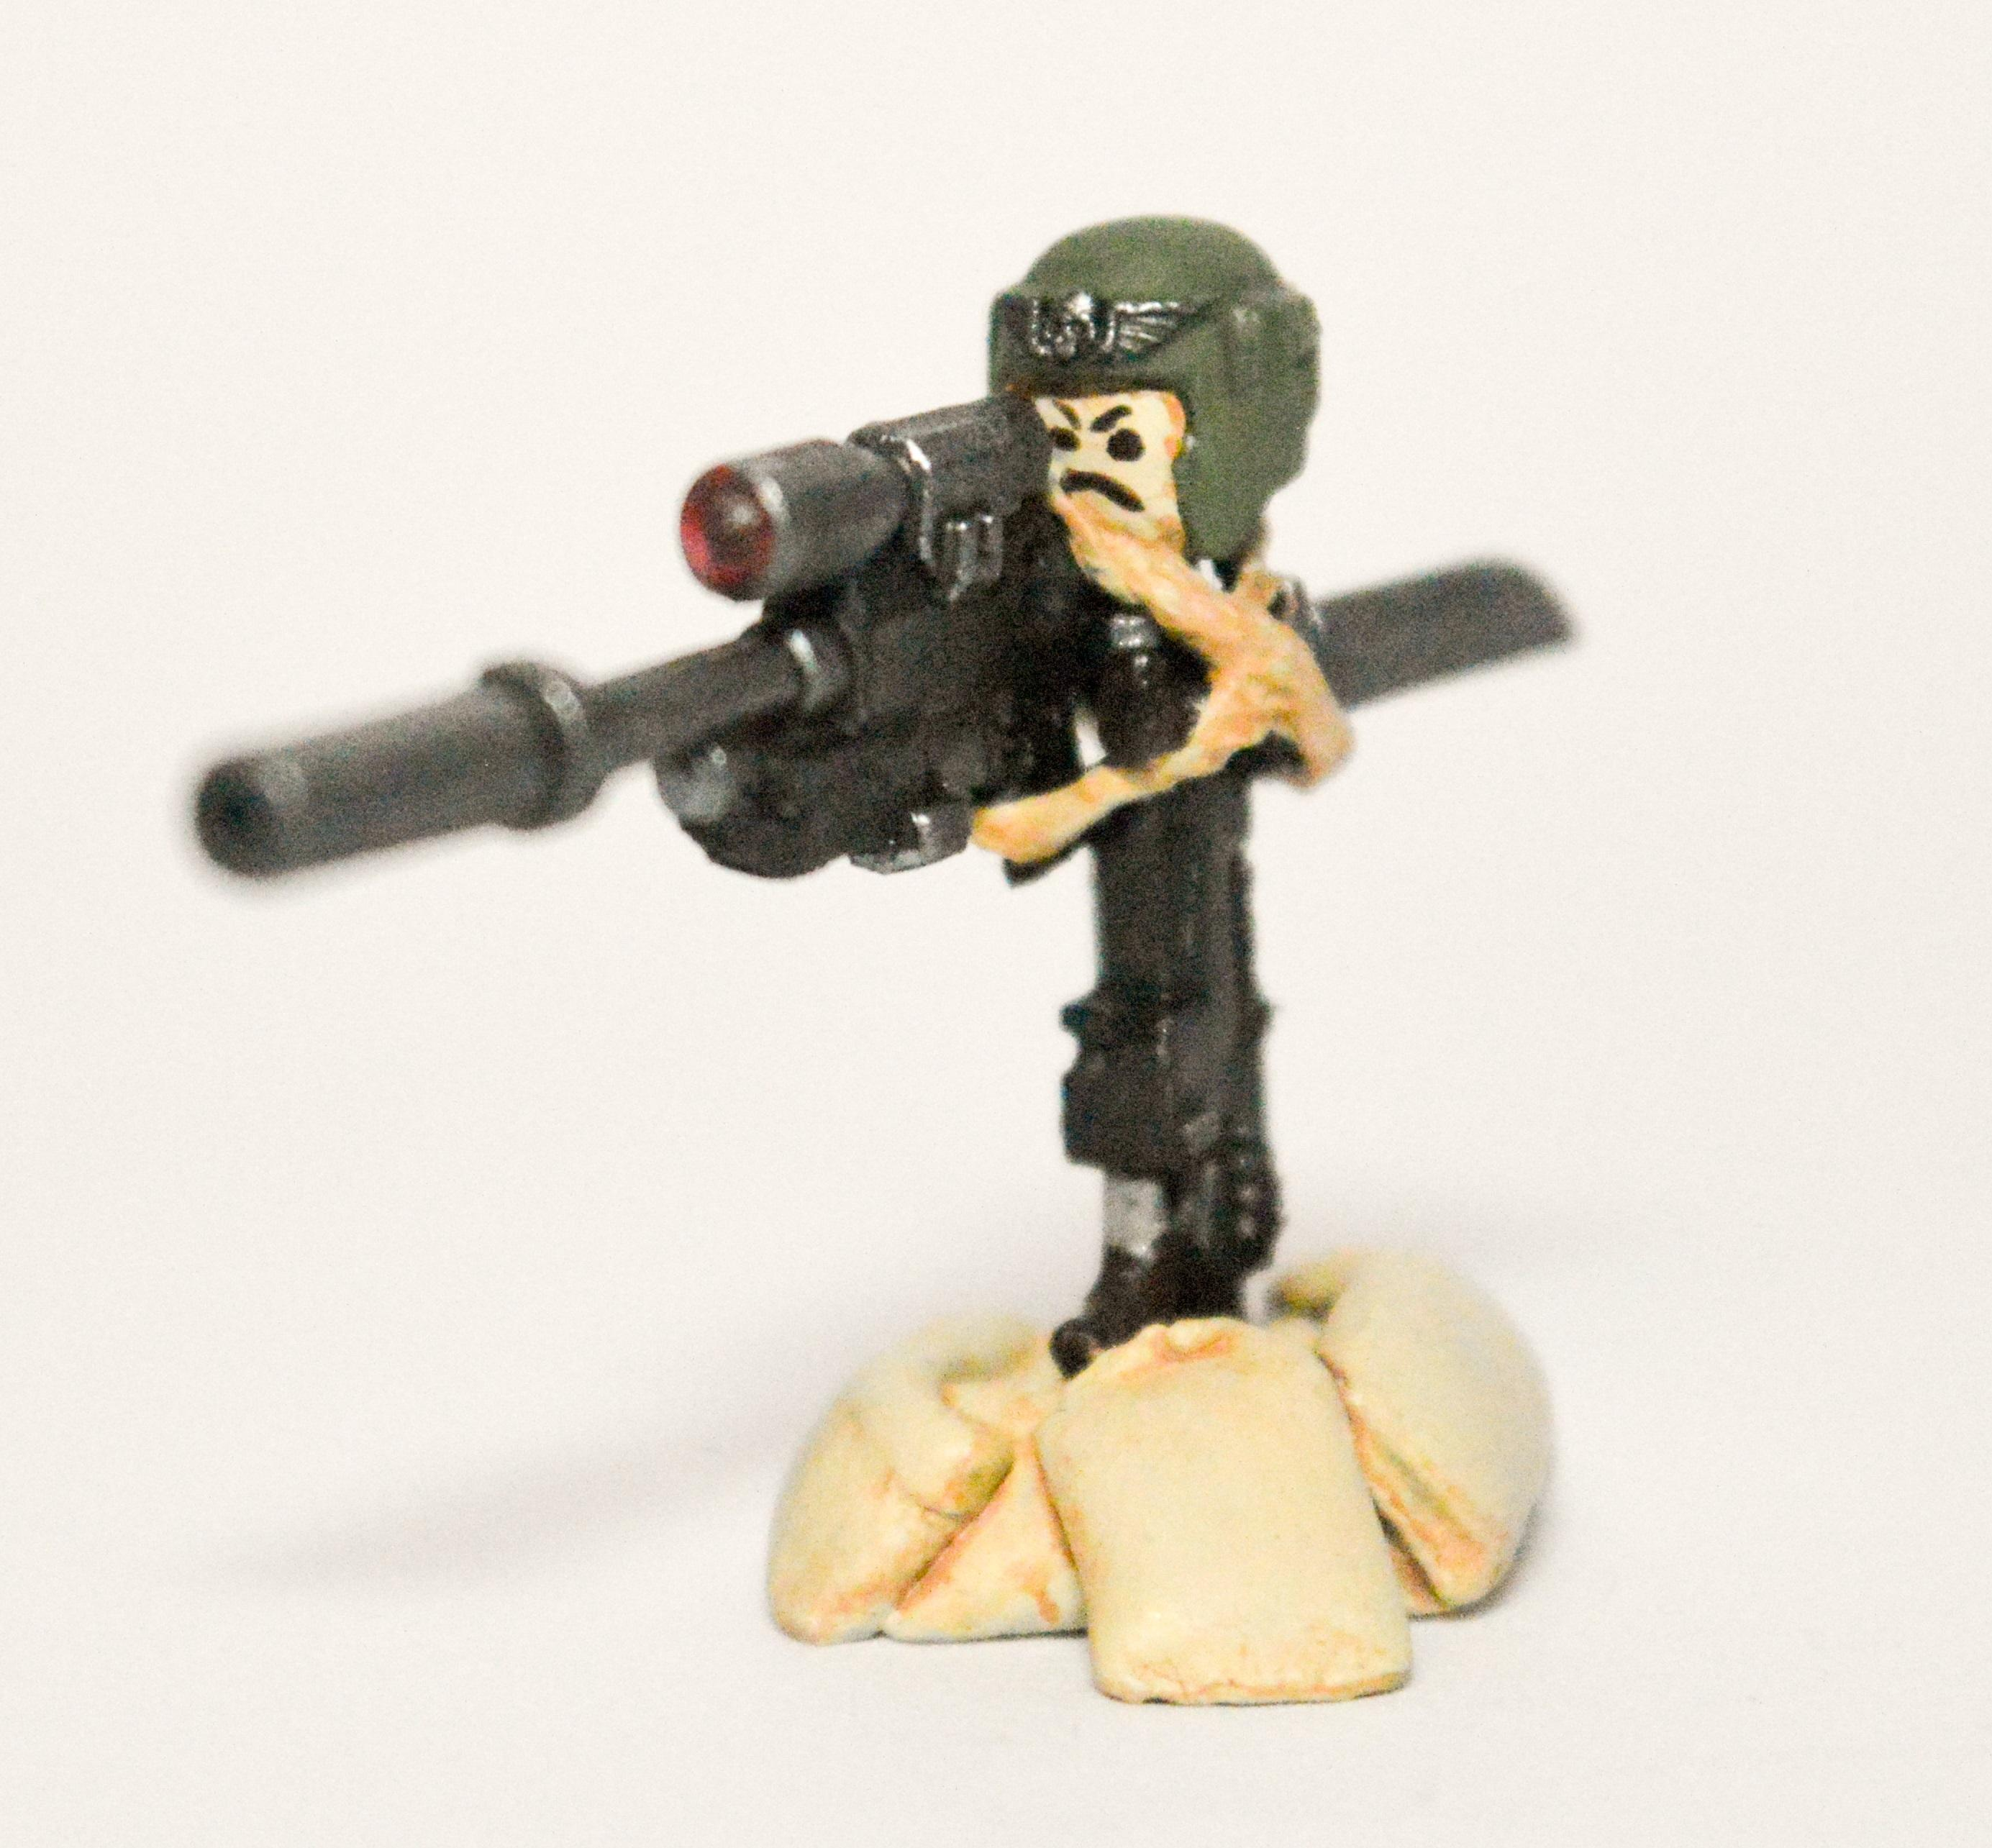 Decoy, Dummy, Imperial Guard, Lego, Snipers